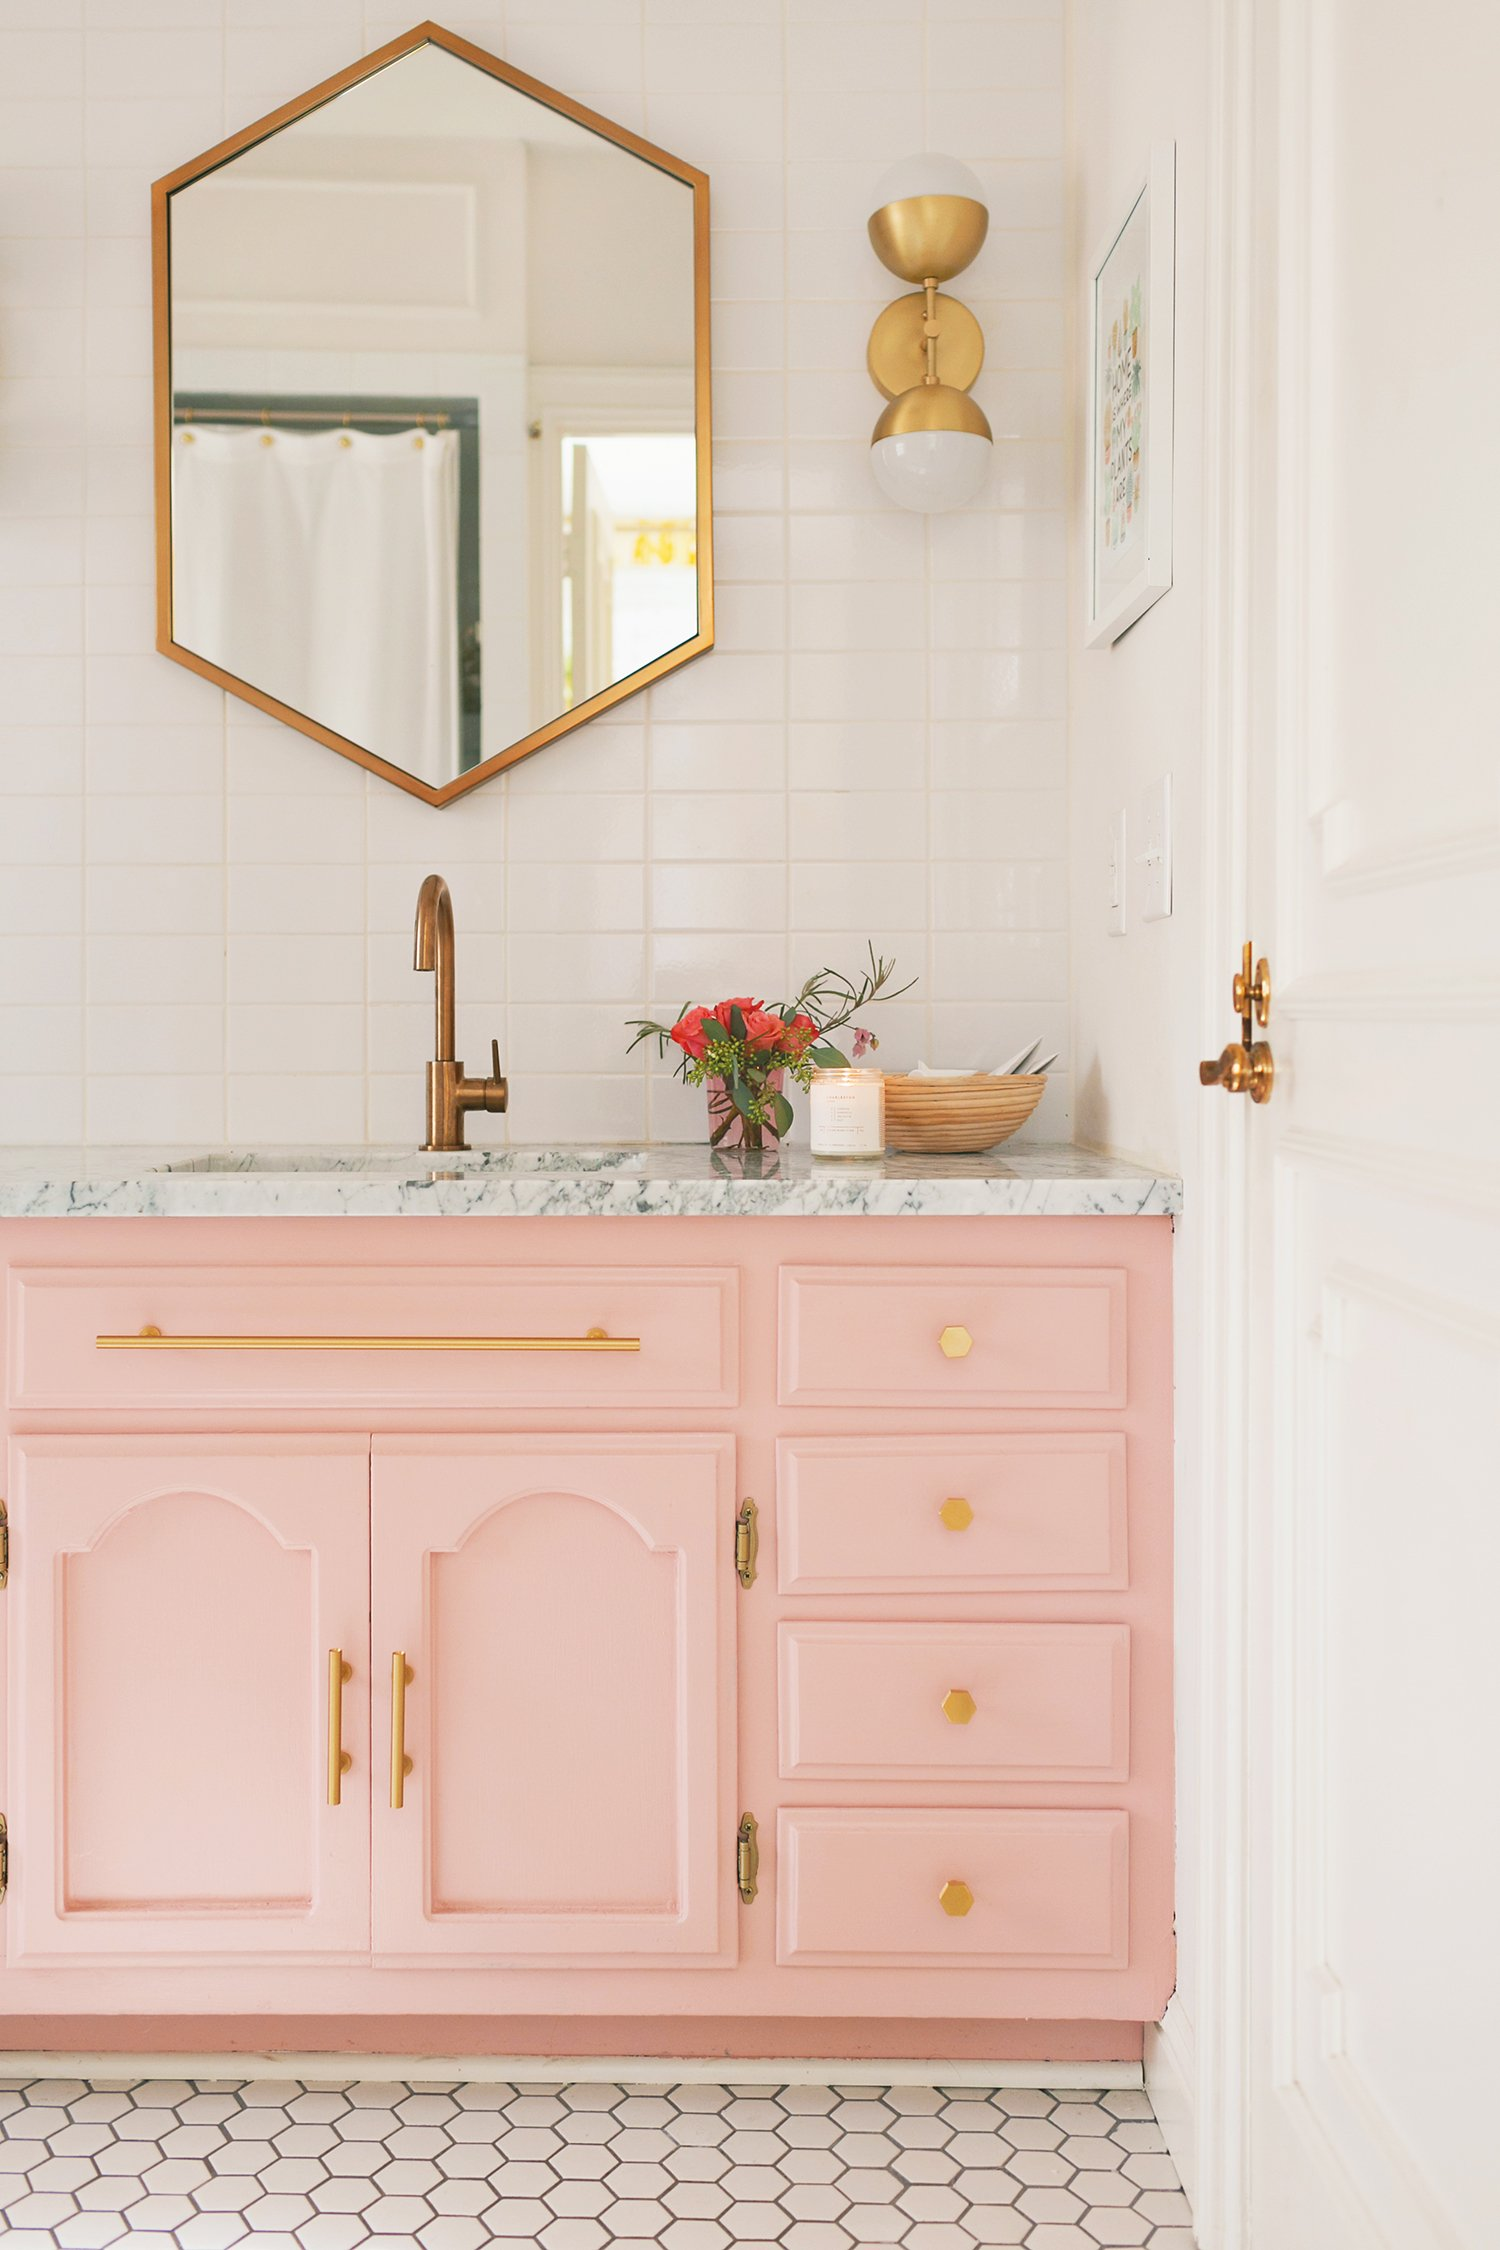 For an affordable bathroom upgrade, consider painting your vanity a fun, fresh color. Want to find out other ways to makeover your bathroom? Check out 13 Easy Ways to Freshen Up Your Bathroom. #paint #bathroom #interiors #tips #makeover #affordable #bathroomupgrade #pink #vanity